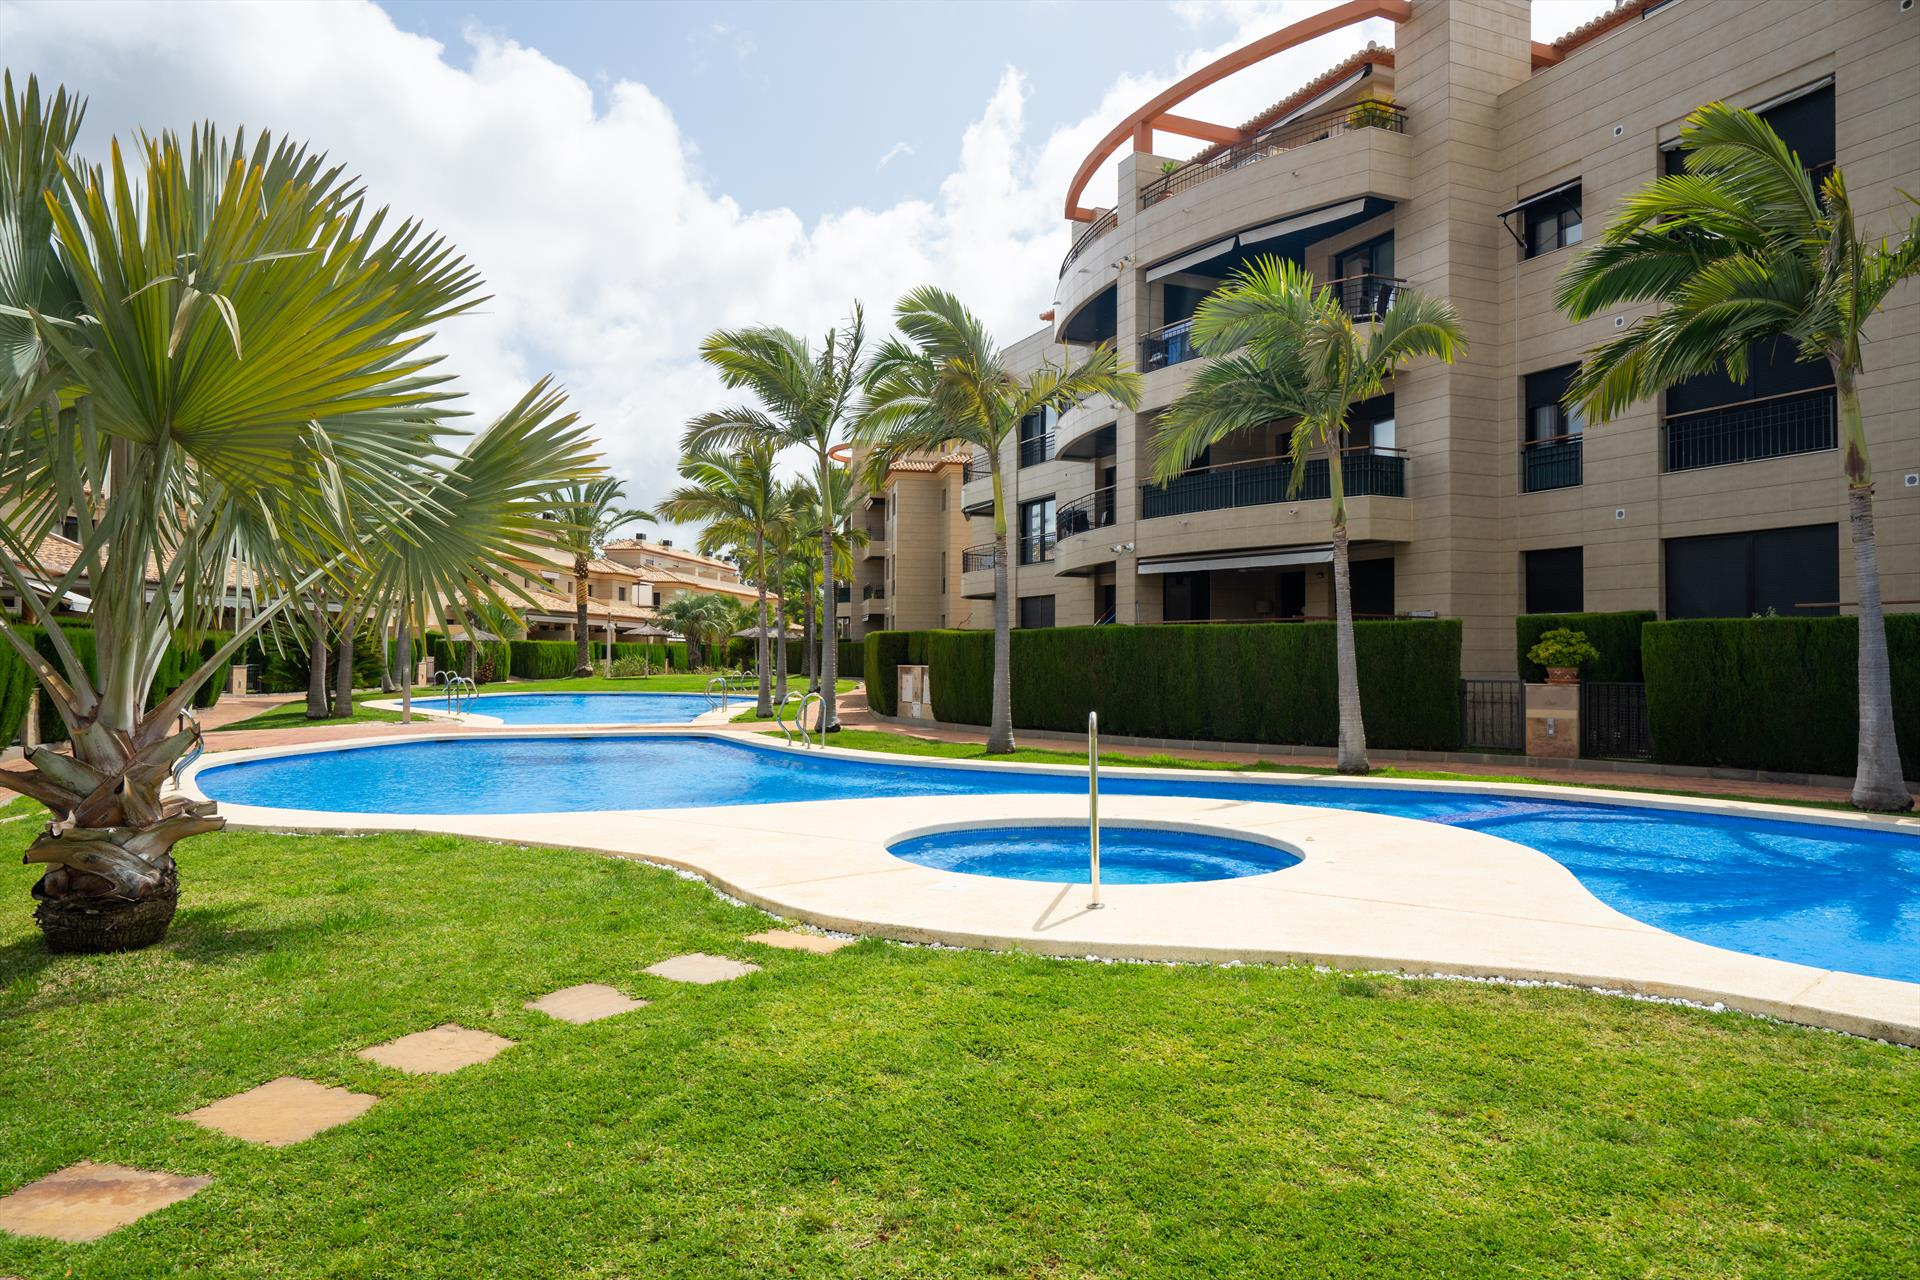 Jardines de Gorgos, Modern and comfortable apartment in Javea, on the Costa Blanca, Spain  with communal pool for 8 persons.....